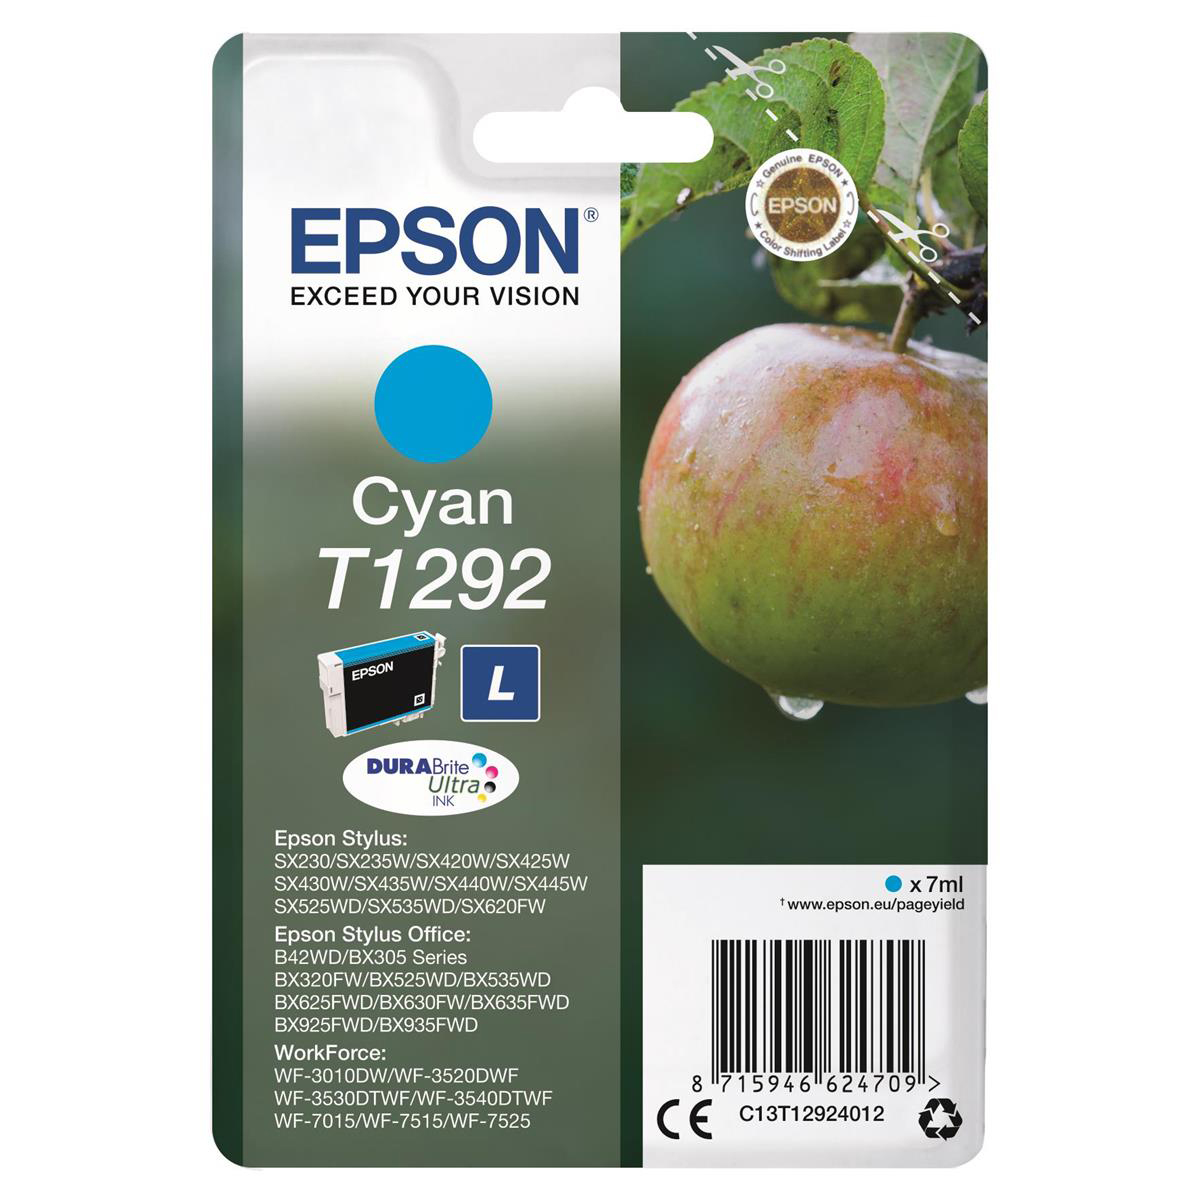 Epson T1292 Inkjet Cartridge Apple L Page Life 445pp 7ml Cyan Ref C13T12924012